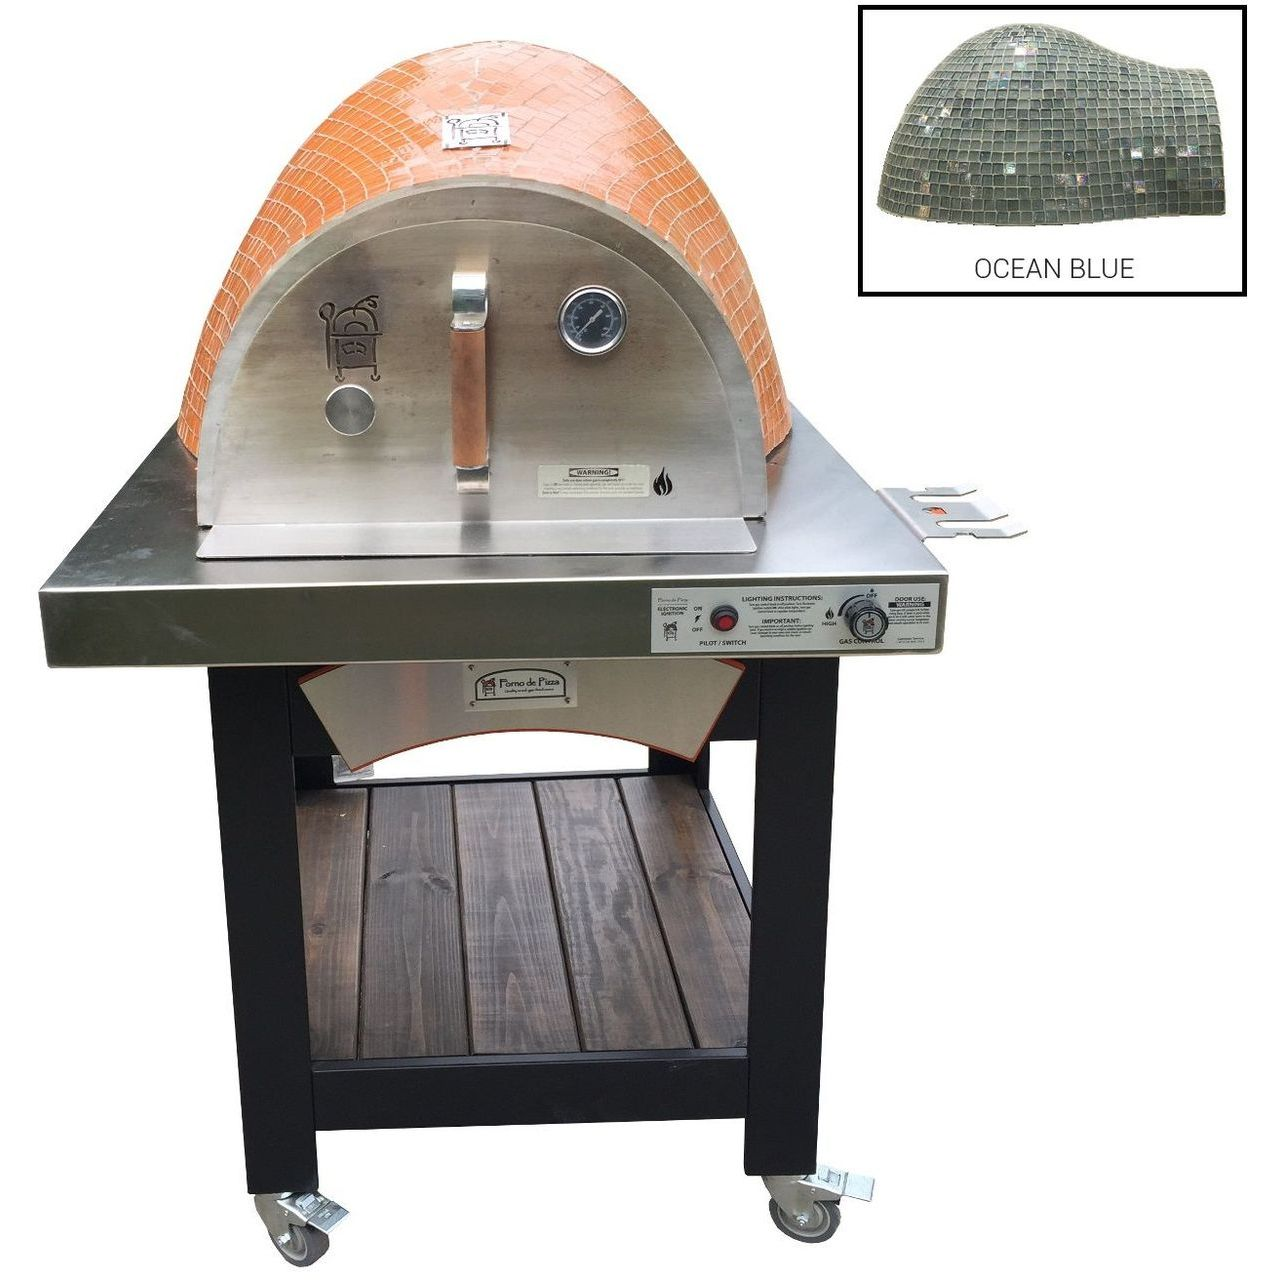 HPC Forno Hybrid Gas/Wood Oven With EI & Cart in Ocean Blue - LP